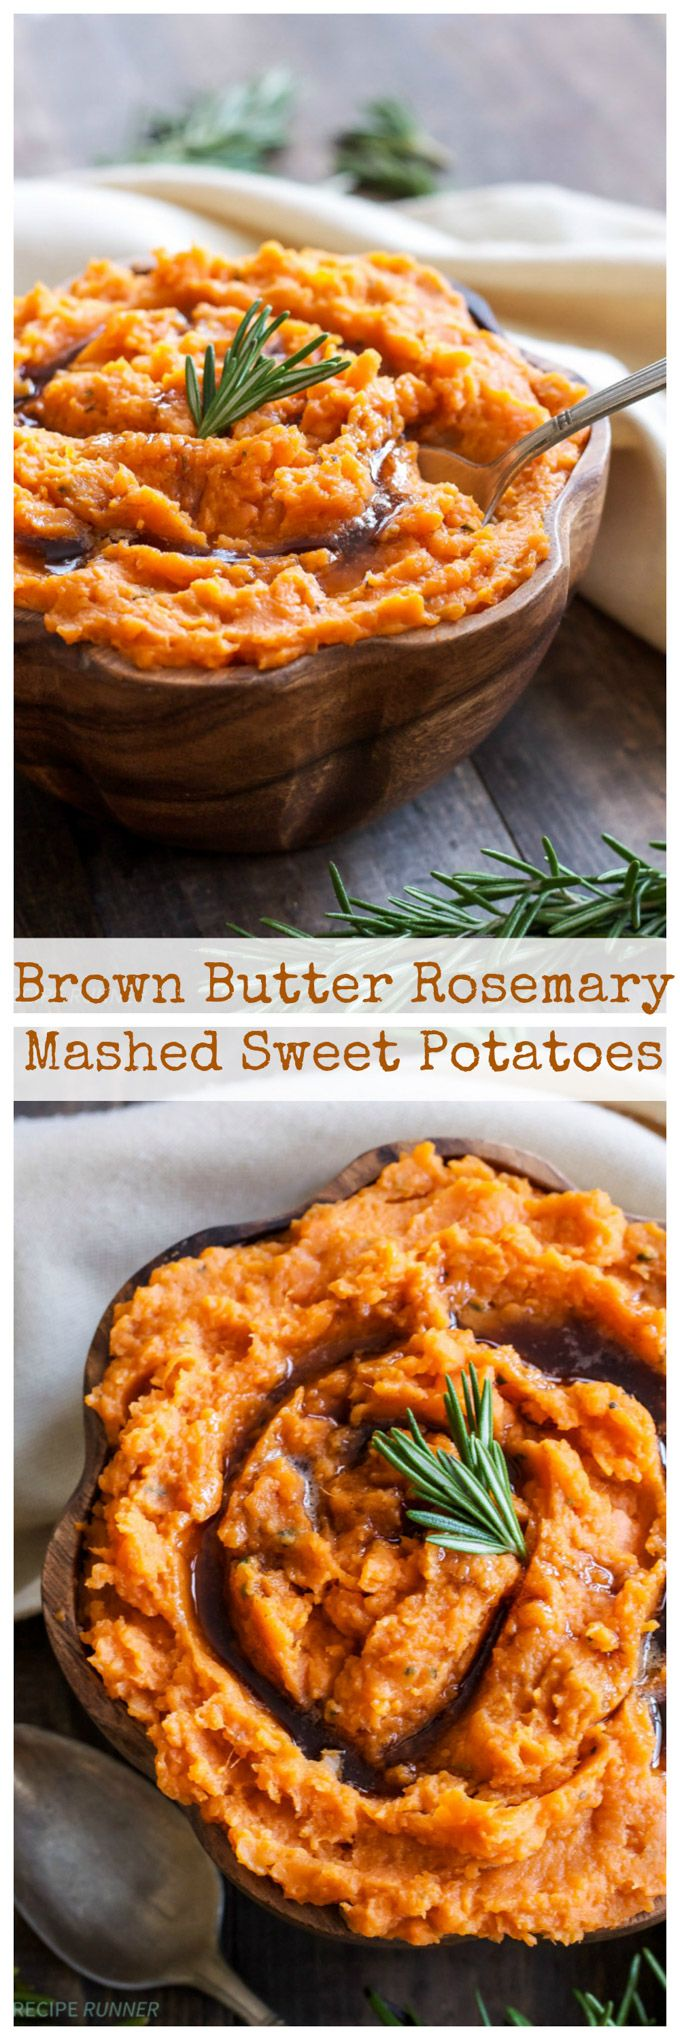 Brown Butter and Mashed Sweet Potatoes are the perfect addition to your holiday menu!